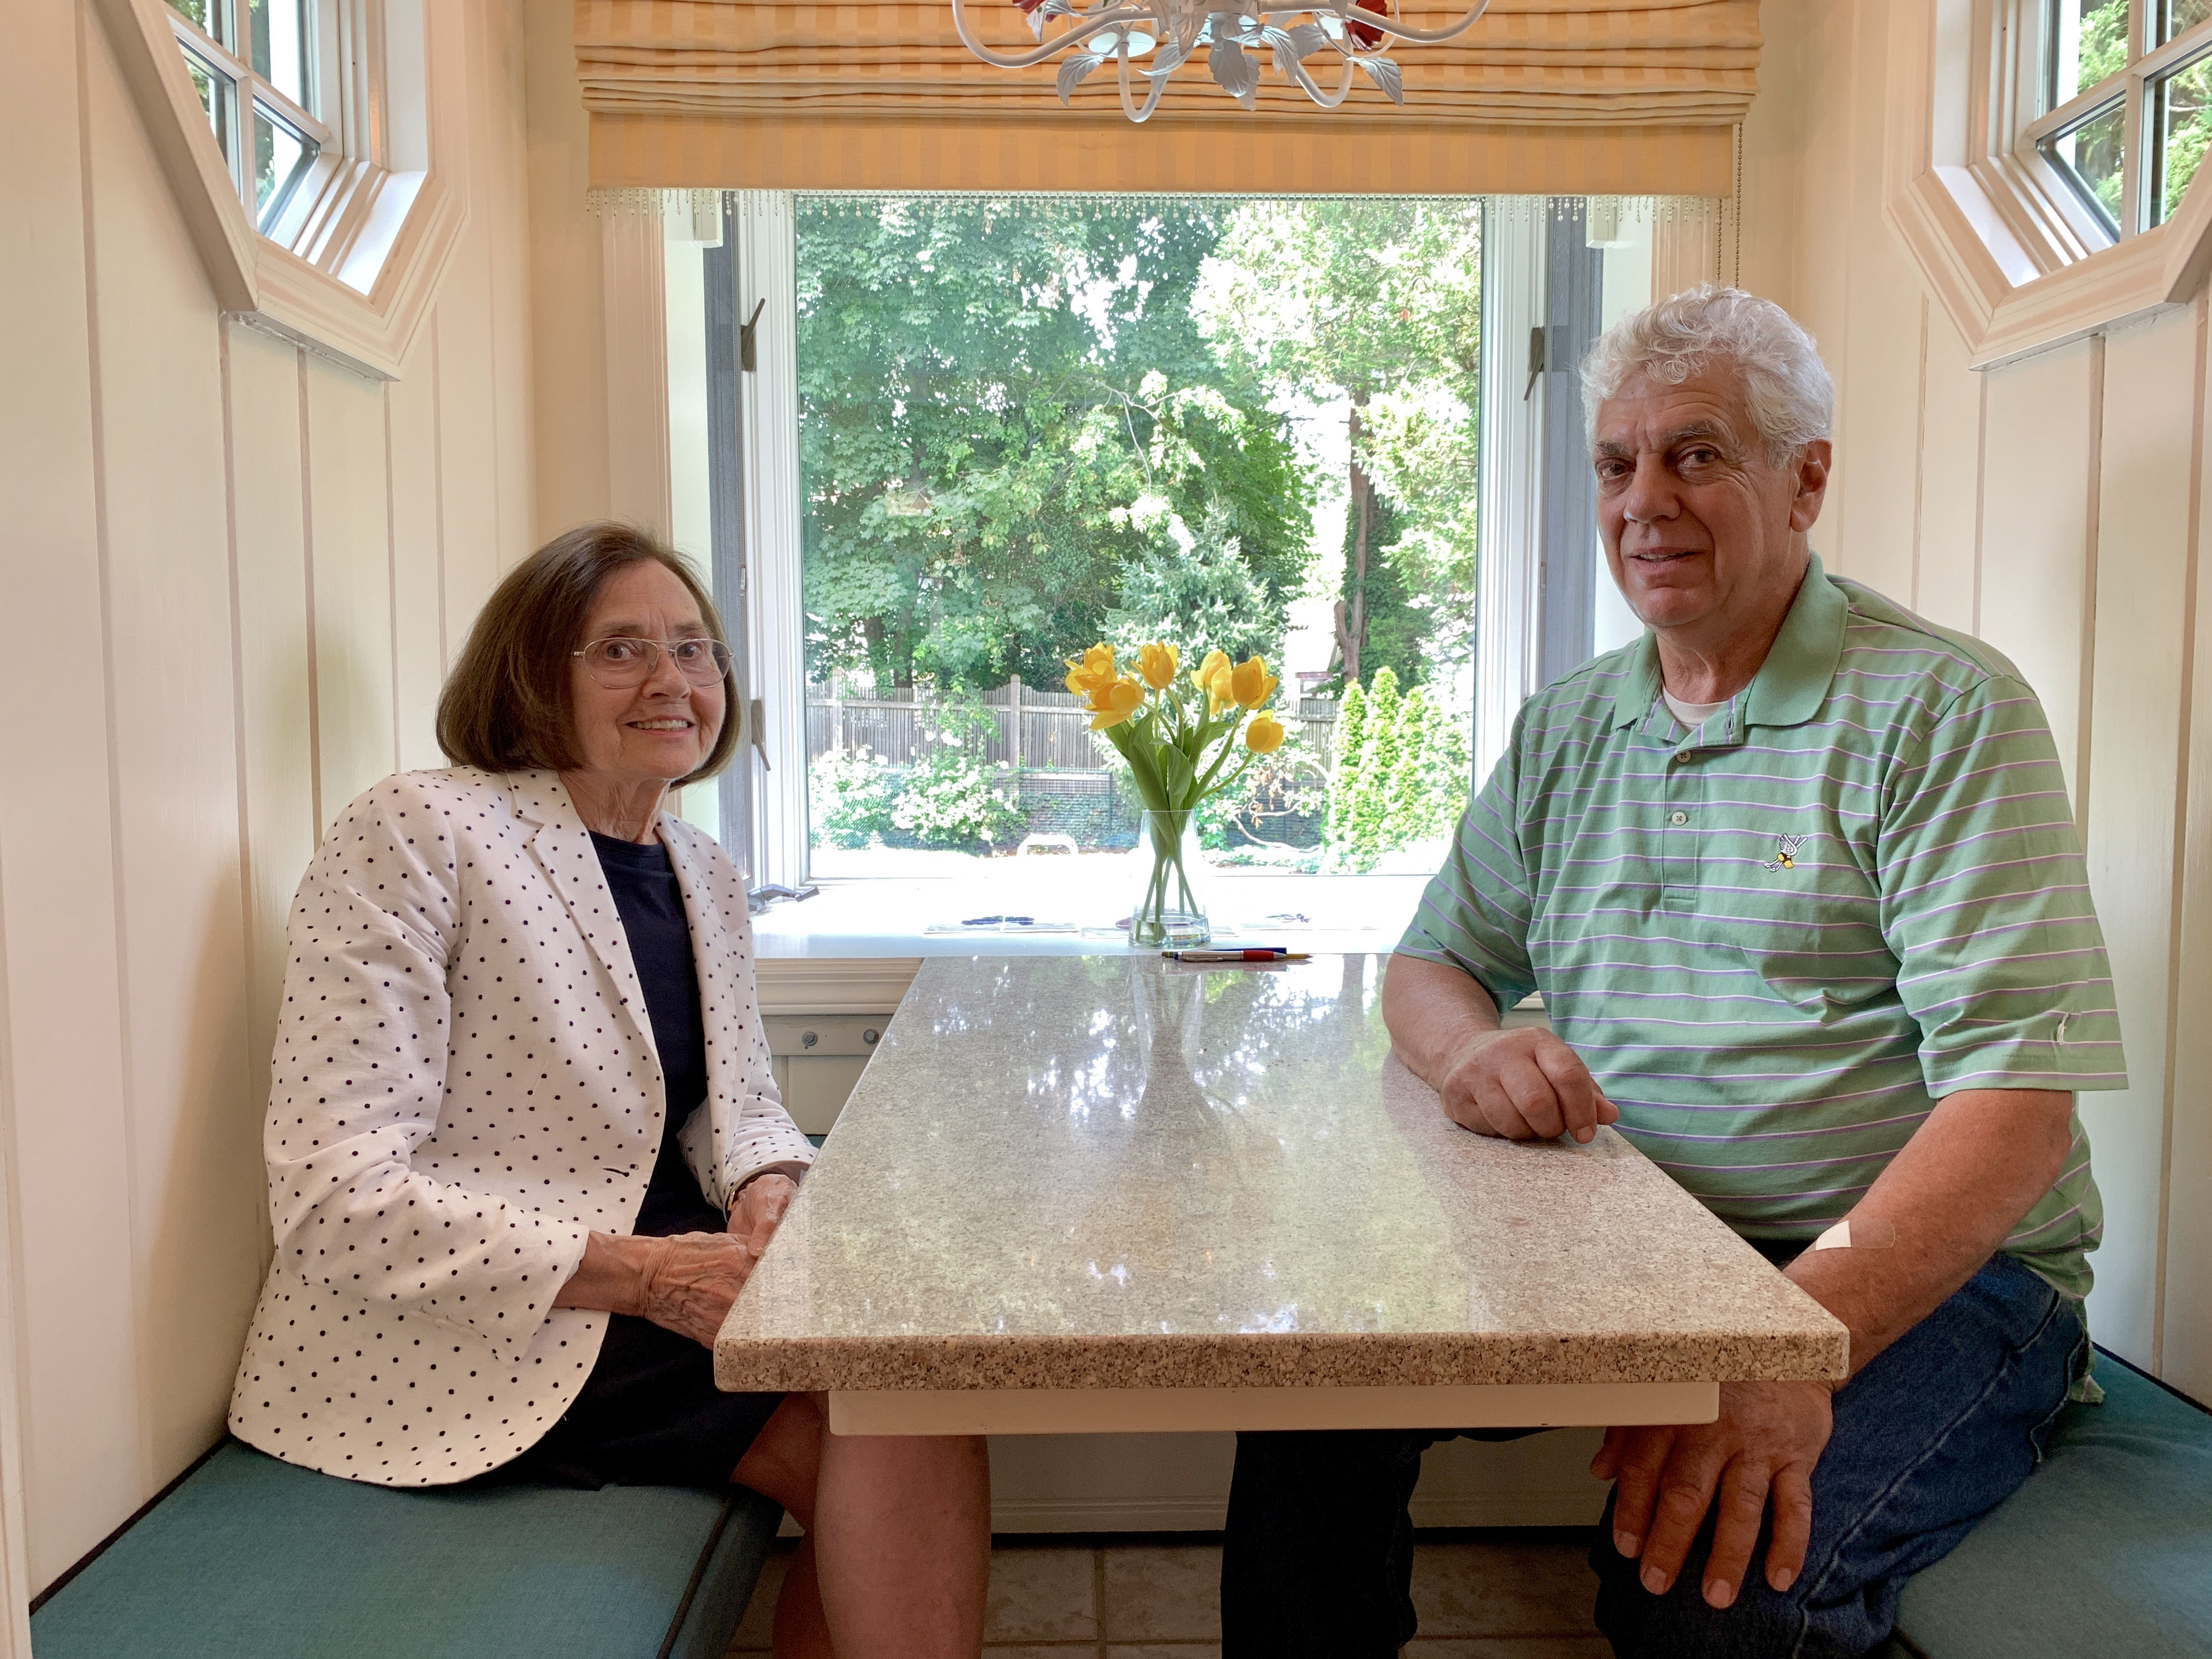 Successful Old Greenwich House Sale When Realtor & Home Owner Work Together